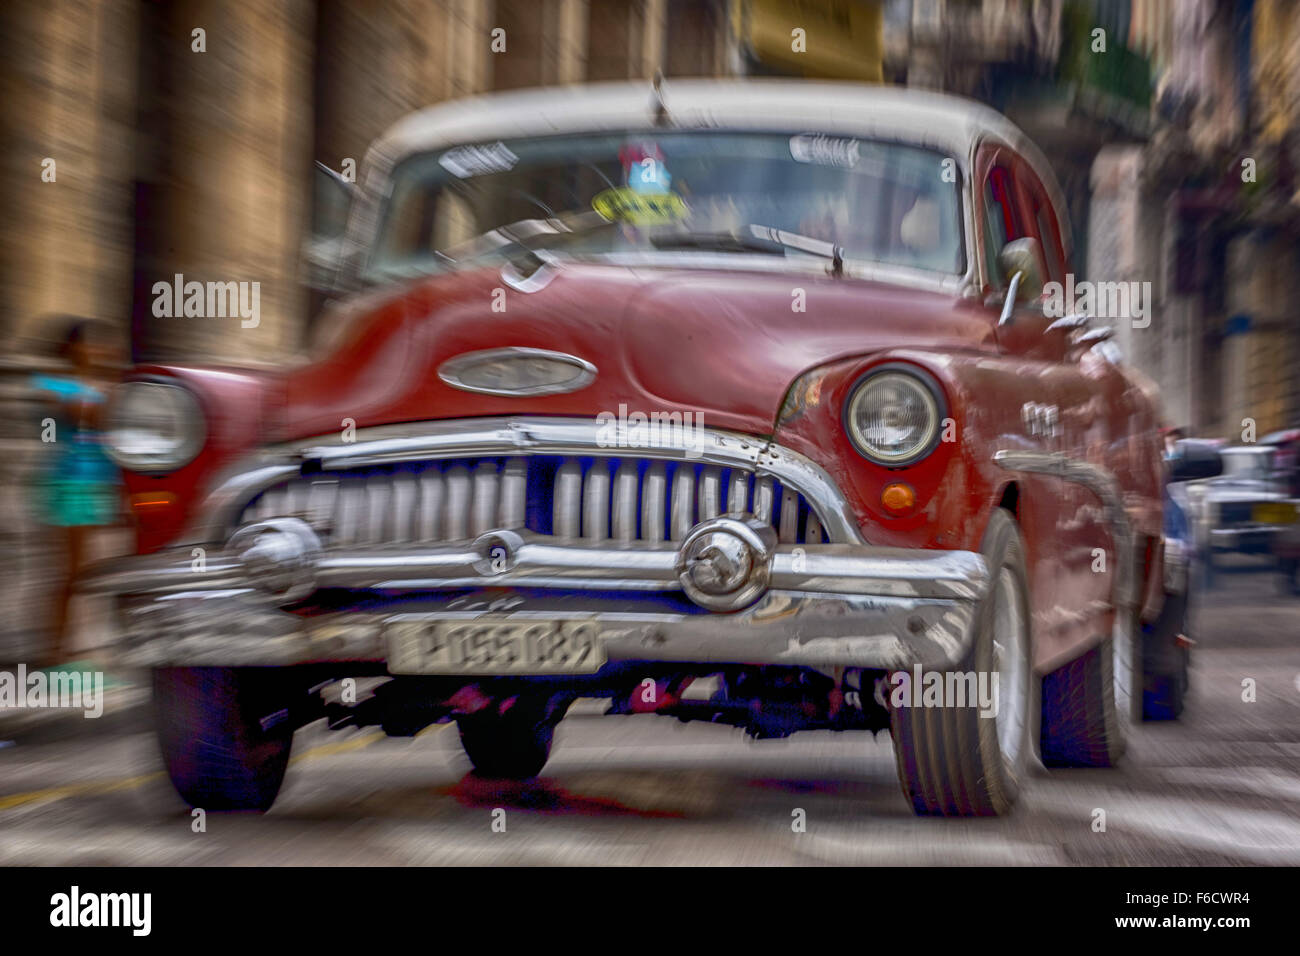 Speed, blurred, traveling old car, red vintage car on the streets, old American Roadcruiser on the streets of Havana, - Stock Image